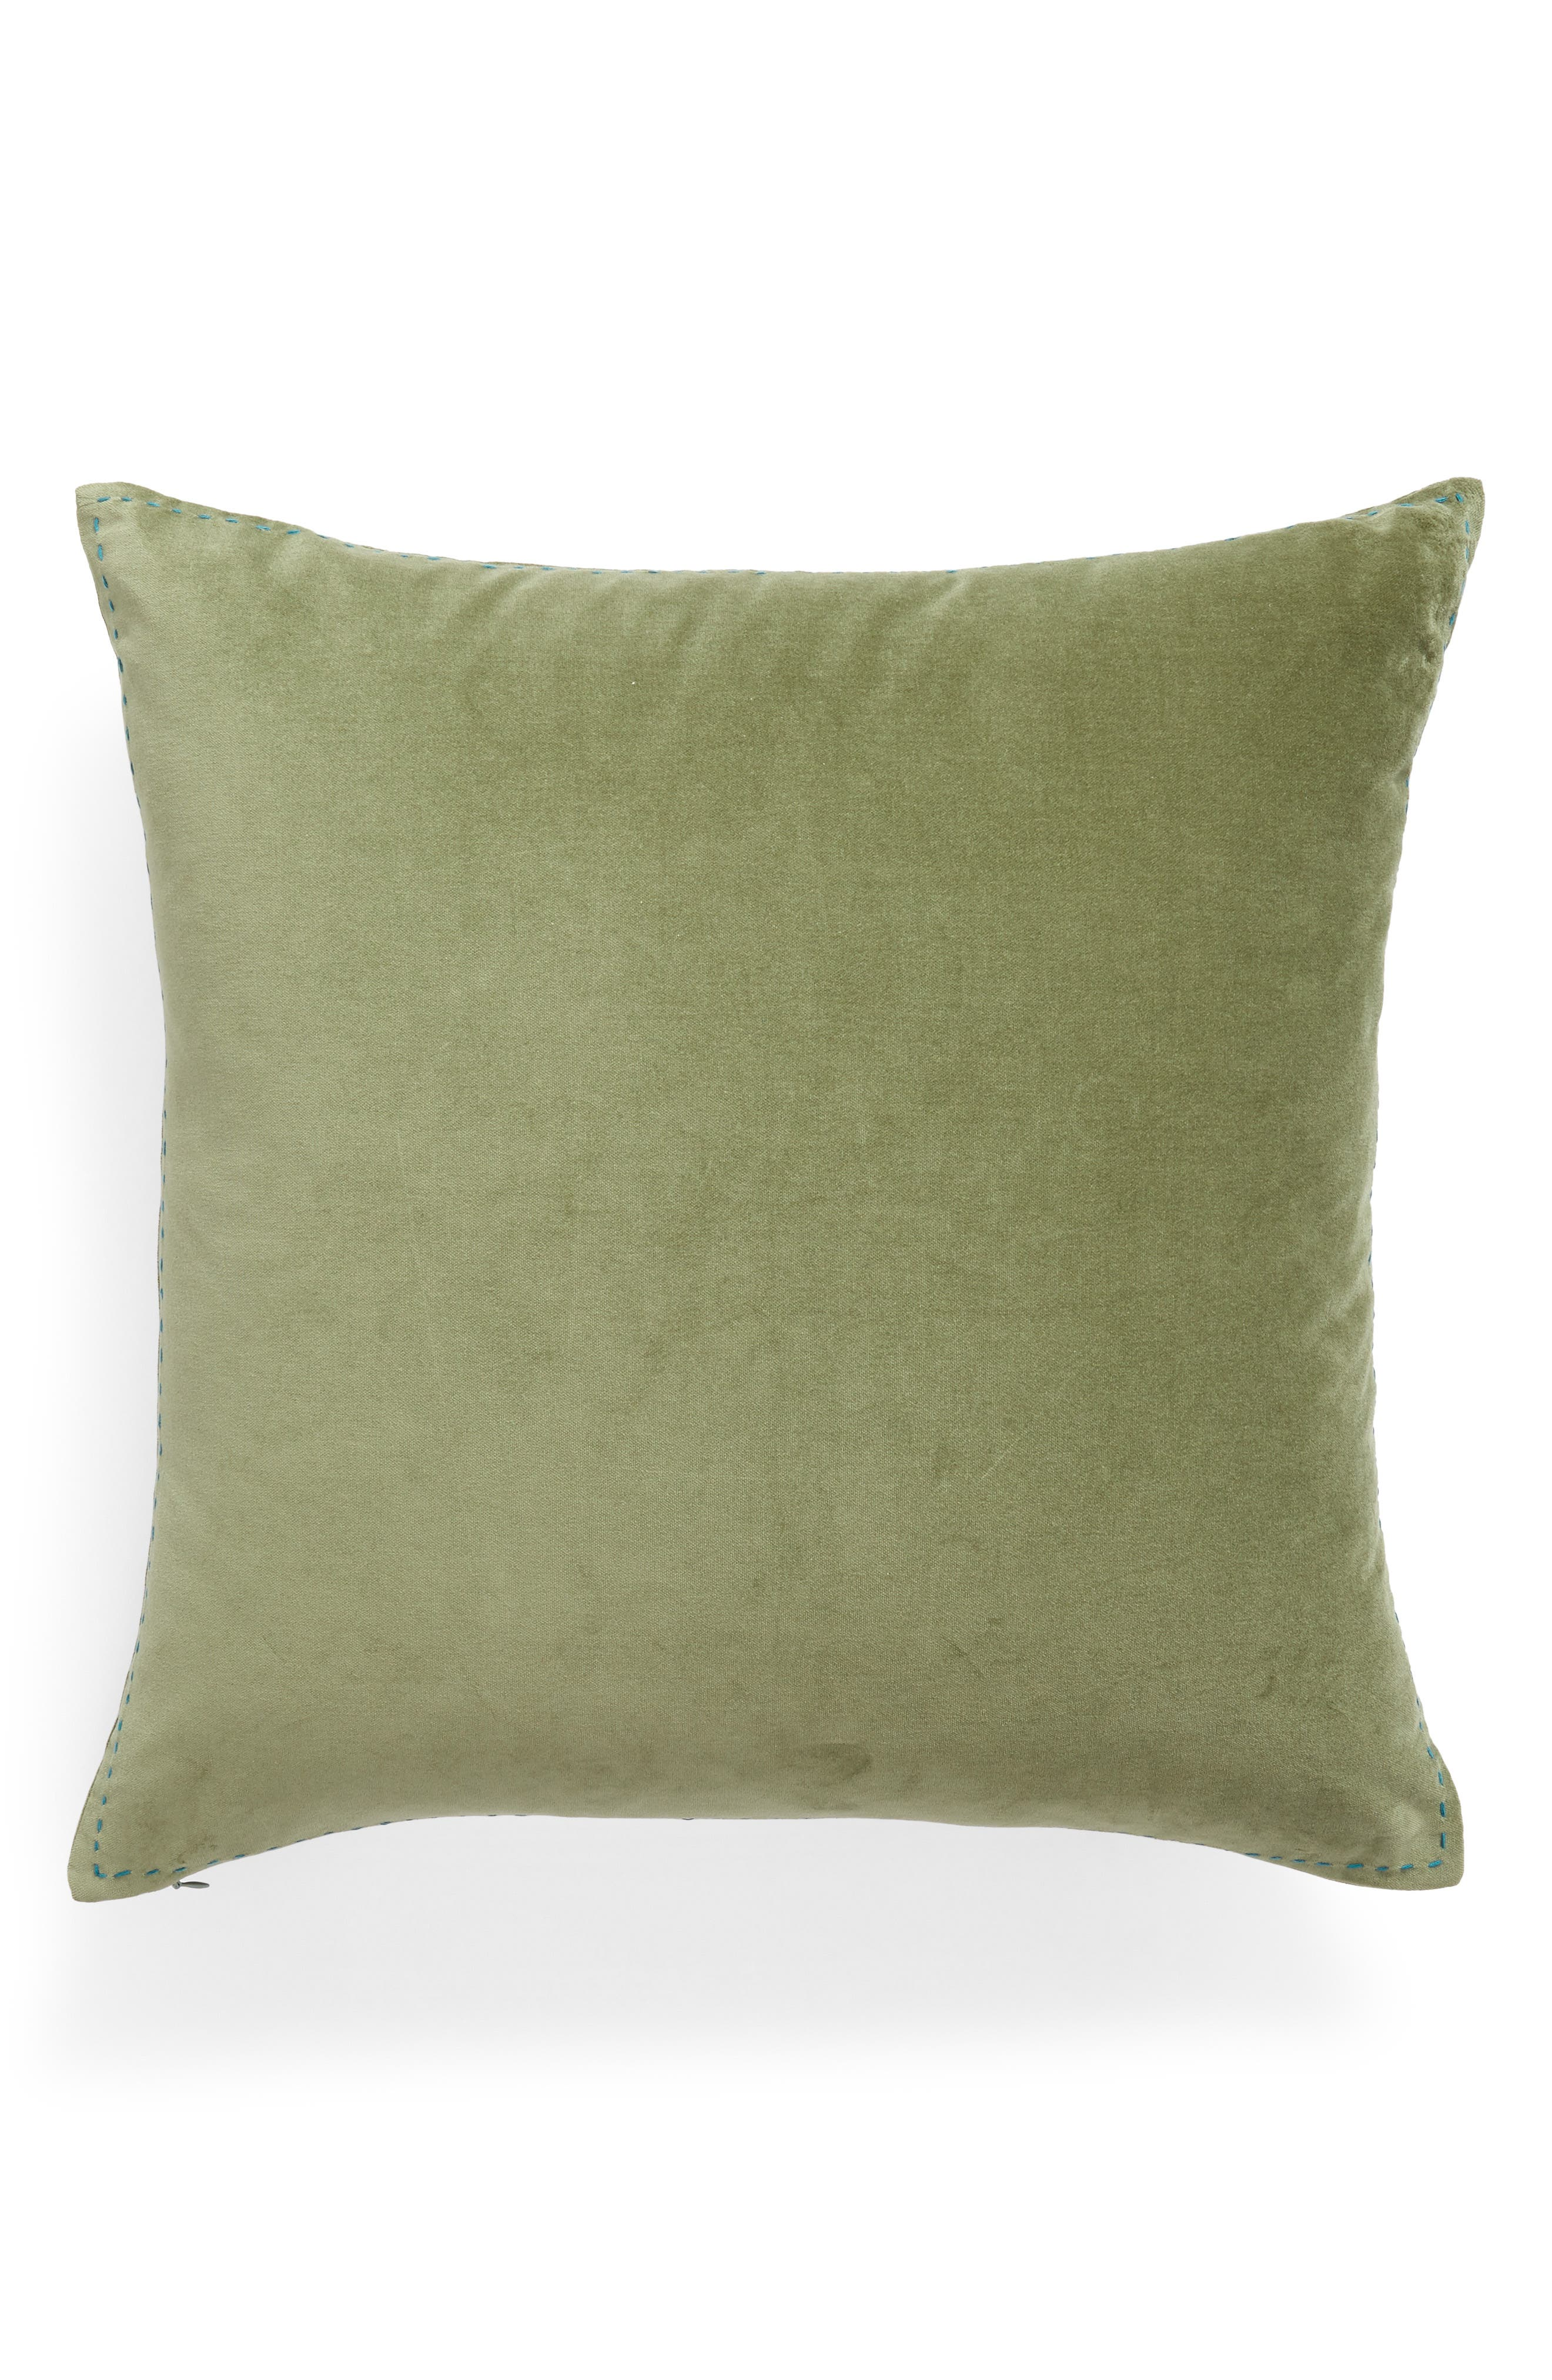 Ticking Border Accent Pillow,                         Main,                         color, Green Sorrel